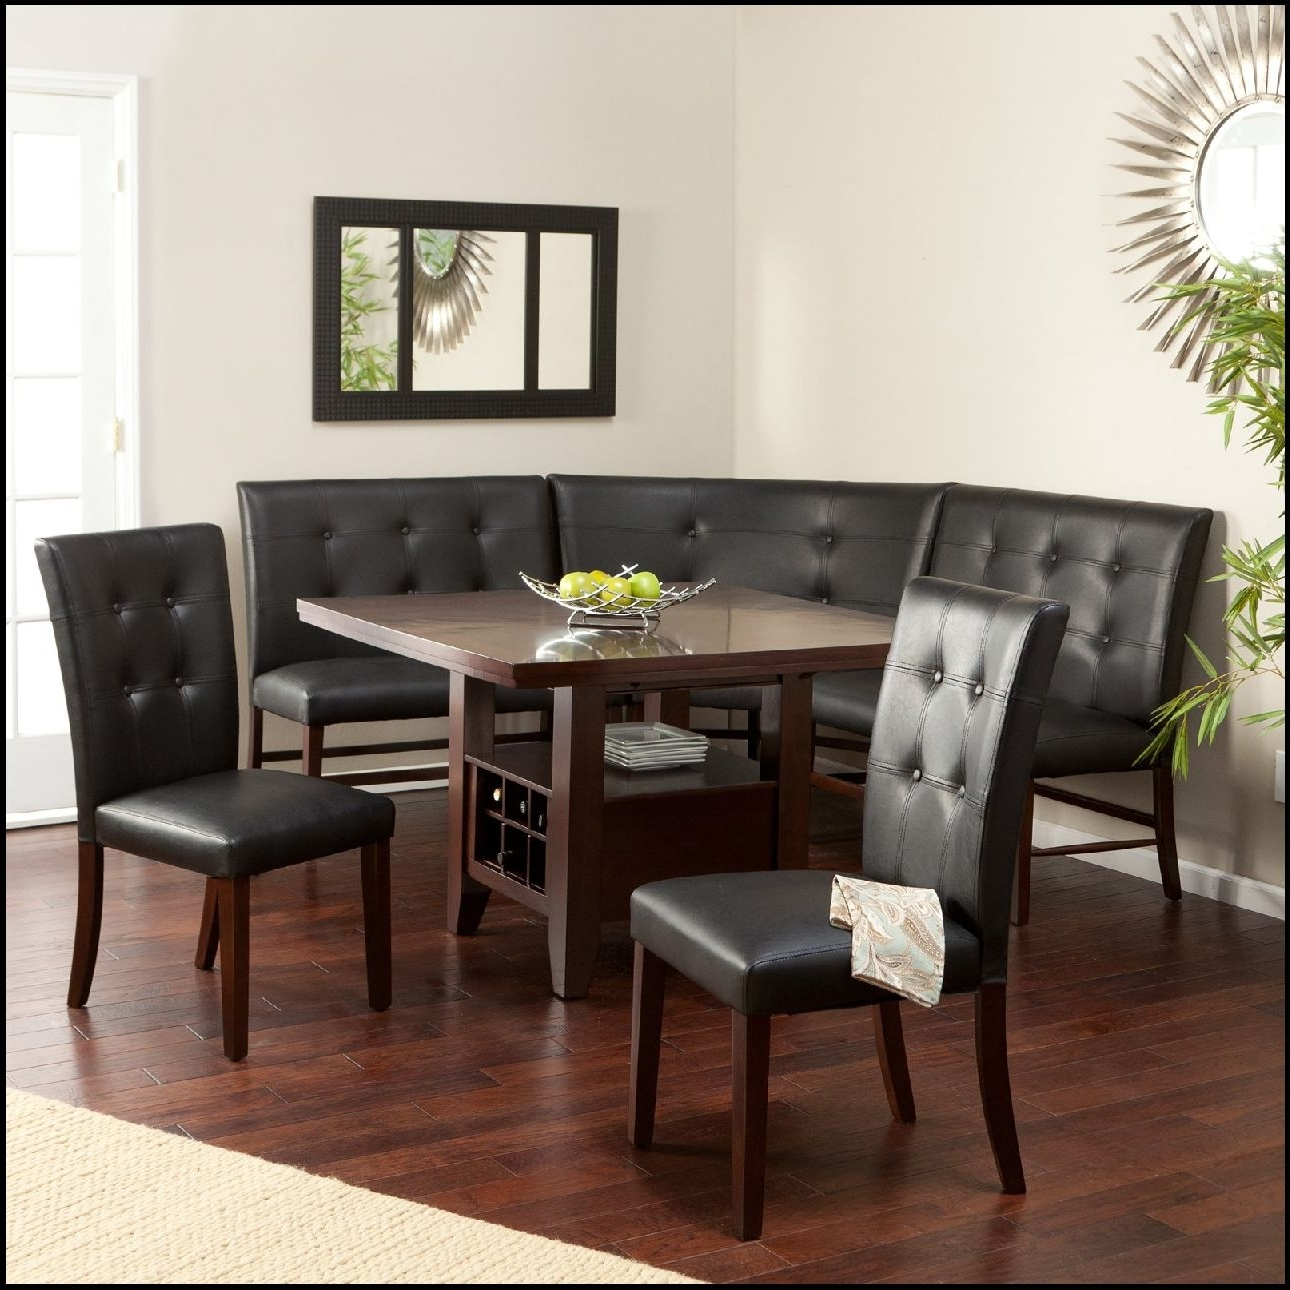 Palazzo 3 Piece Dining Table Sets Inside 2017 Modern Spectacular Marvelous Small Kitchen Dining Table Sets 19 (Gallery 13 of 25)